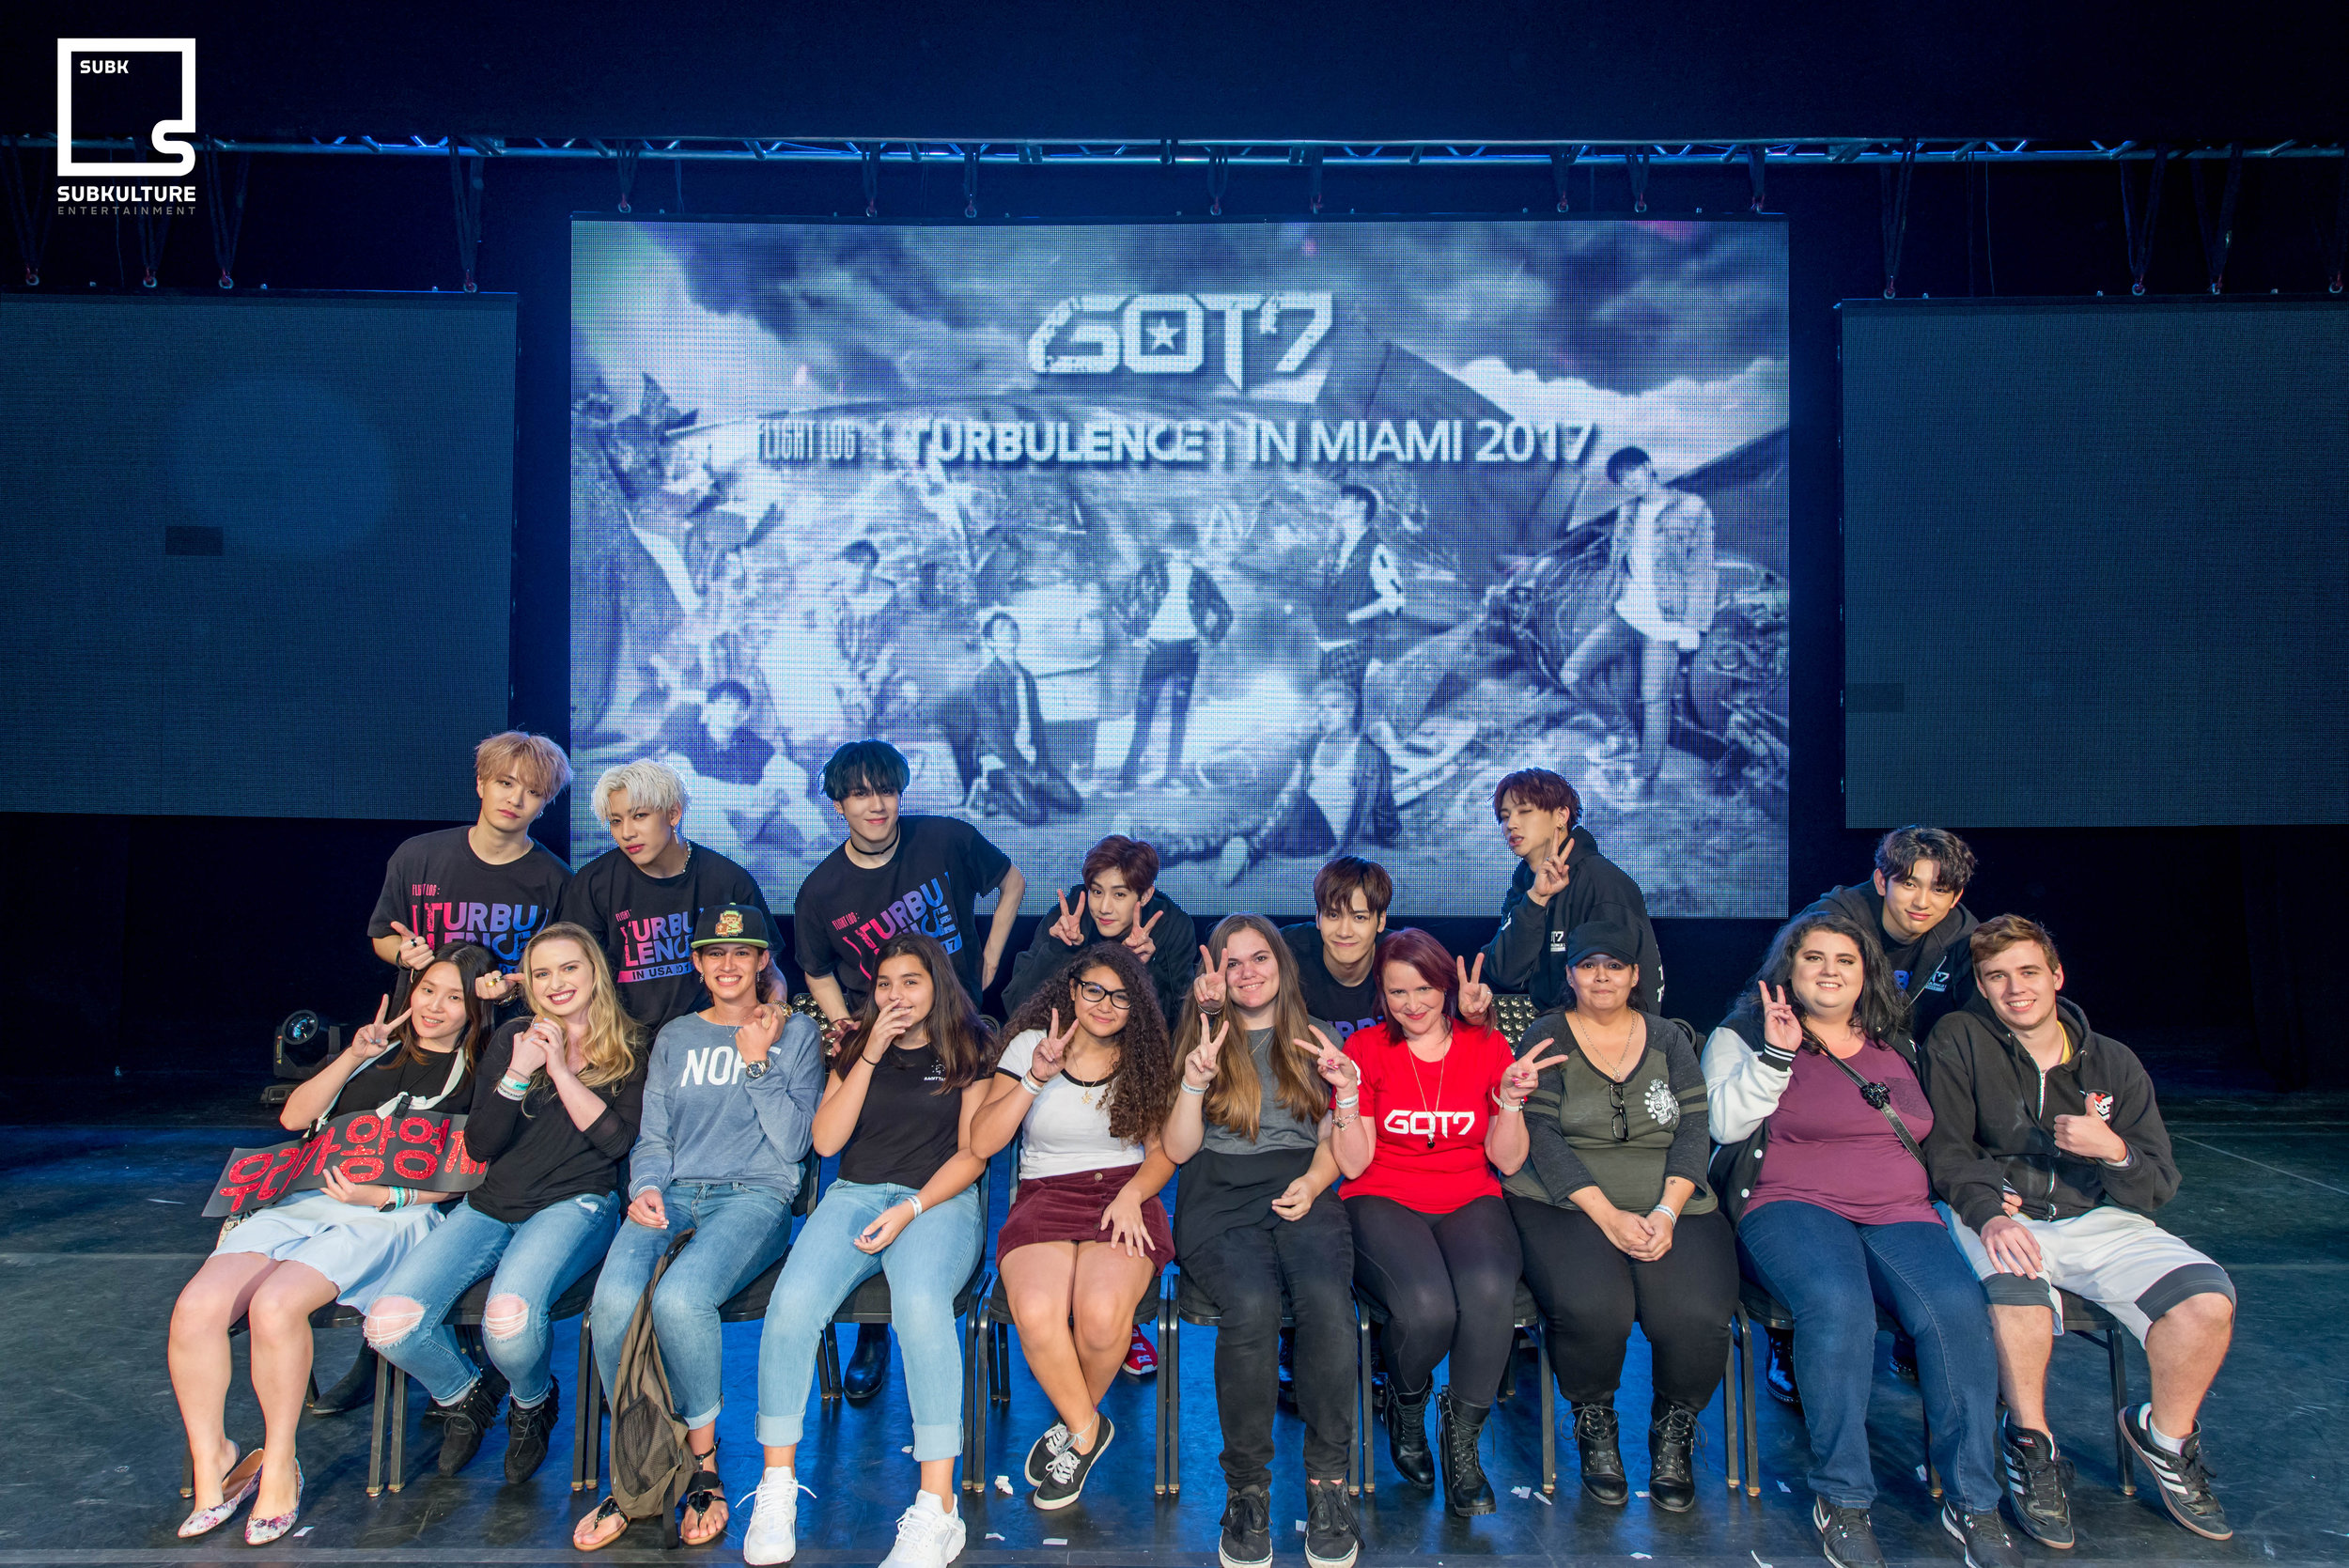 GOT7 Fan Photos Miami -1134 copy.jpg